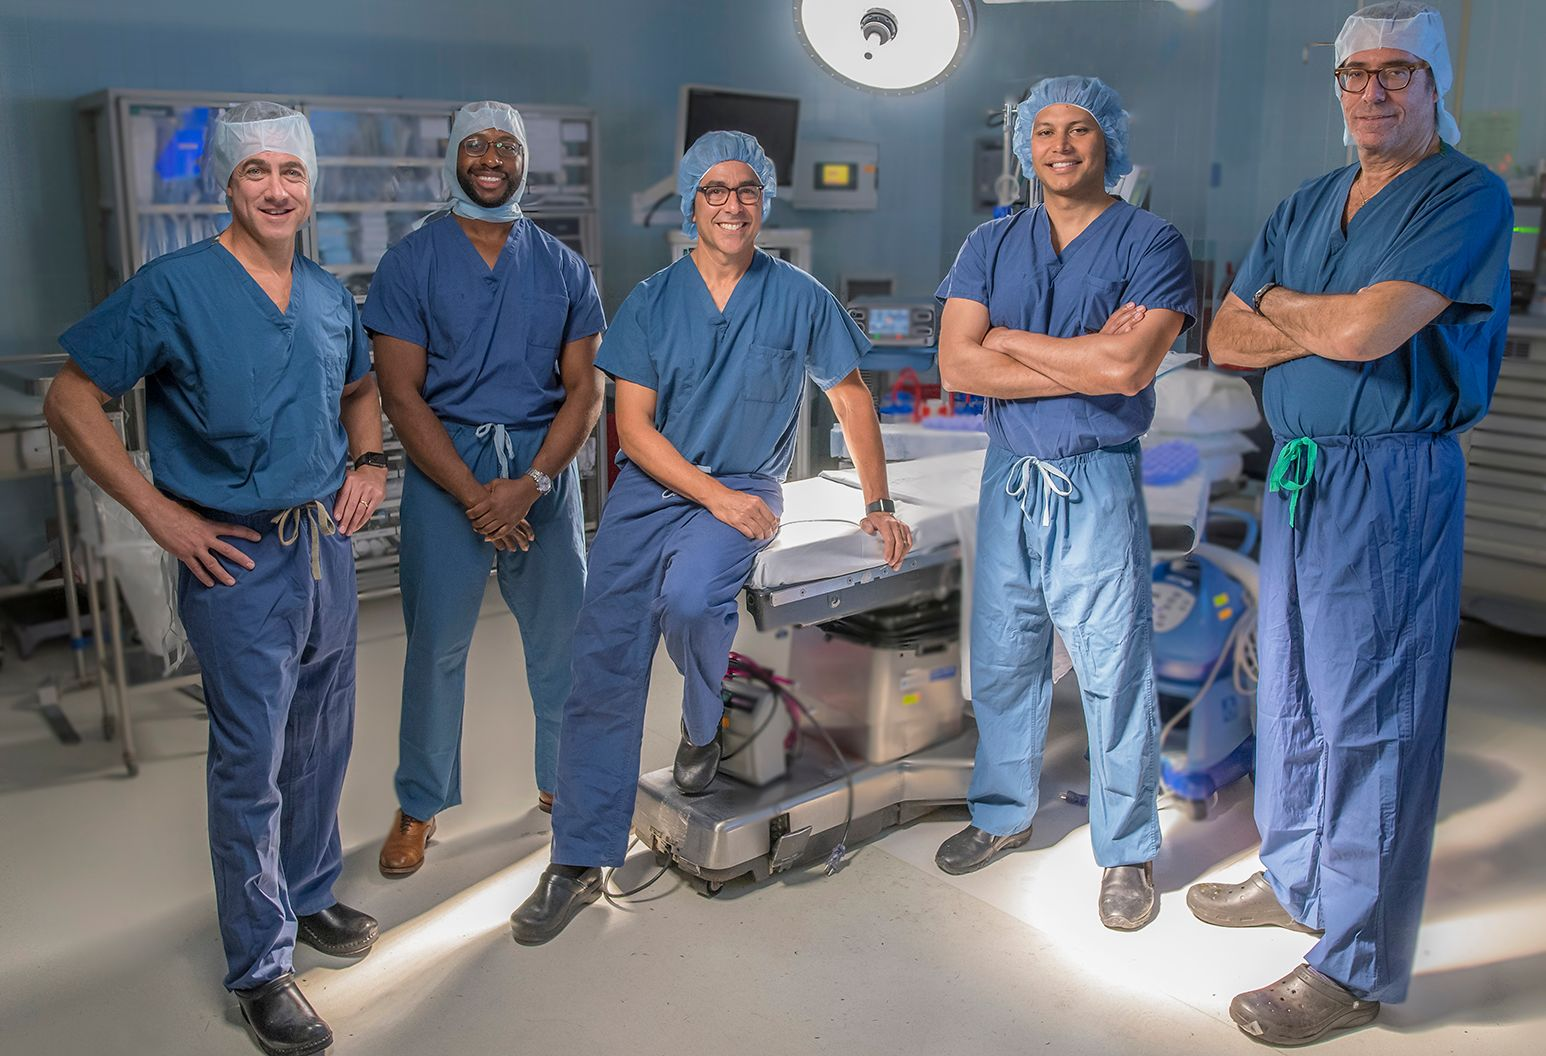 Group of surgeons wearing surgical scrubs pose for a group photograph in an operating roon